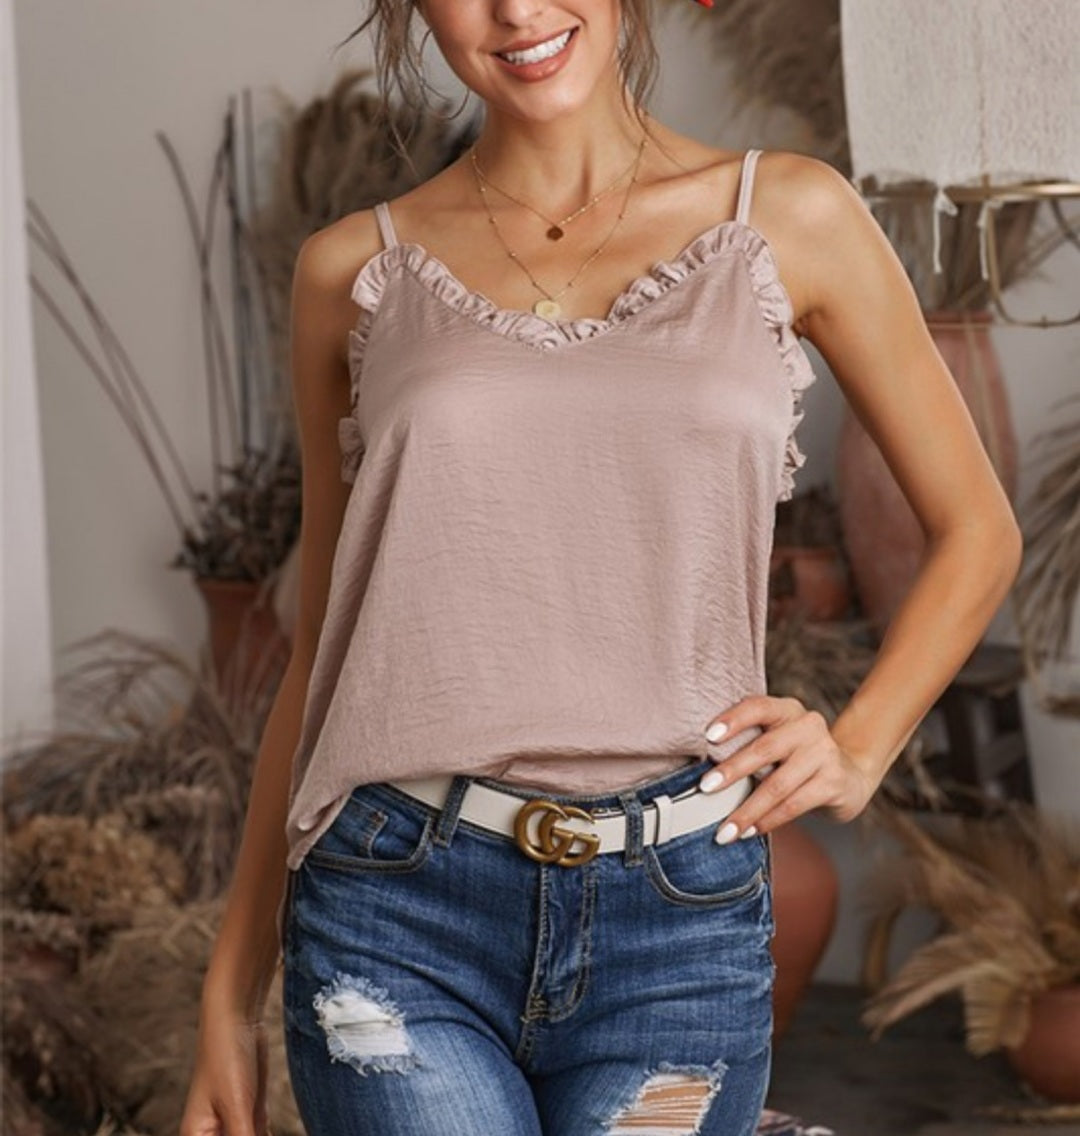 V-Neck Ruffle Camisole Tank Top-Apricot  (S-2XL)